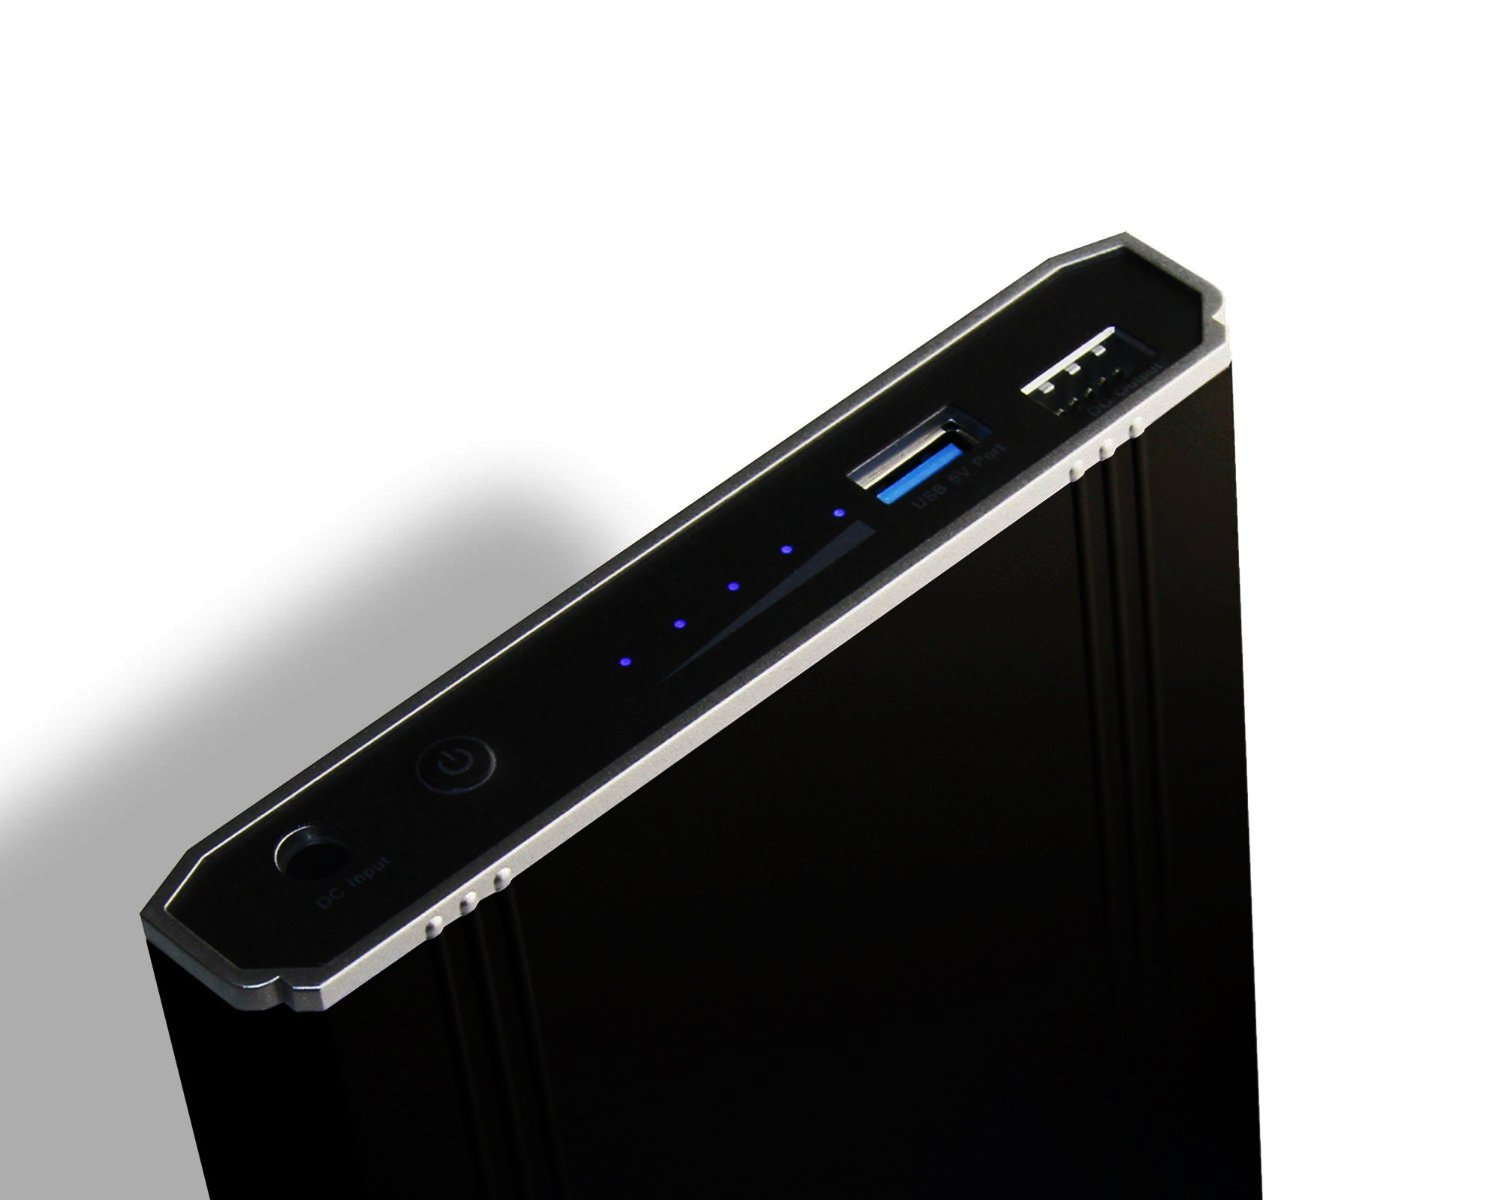 Lizone Extra Pro 50000mAh PD USB C External Battery Power Bank Portable Charger for 2016 2017 Macbook Pro HP Spectre Lenovo Yoga Asus LG Dell Razer Blade Stealth Acer PD USB-C Laptop Tablet Smartphone by Lizone (Image #8)